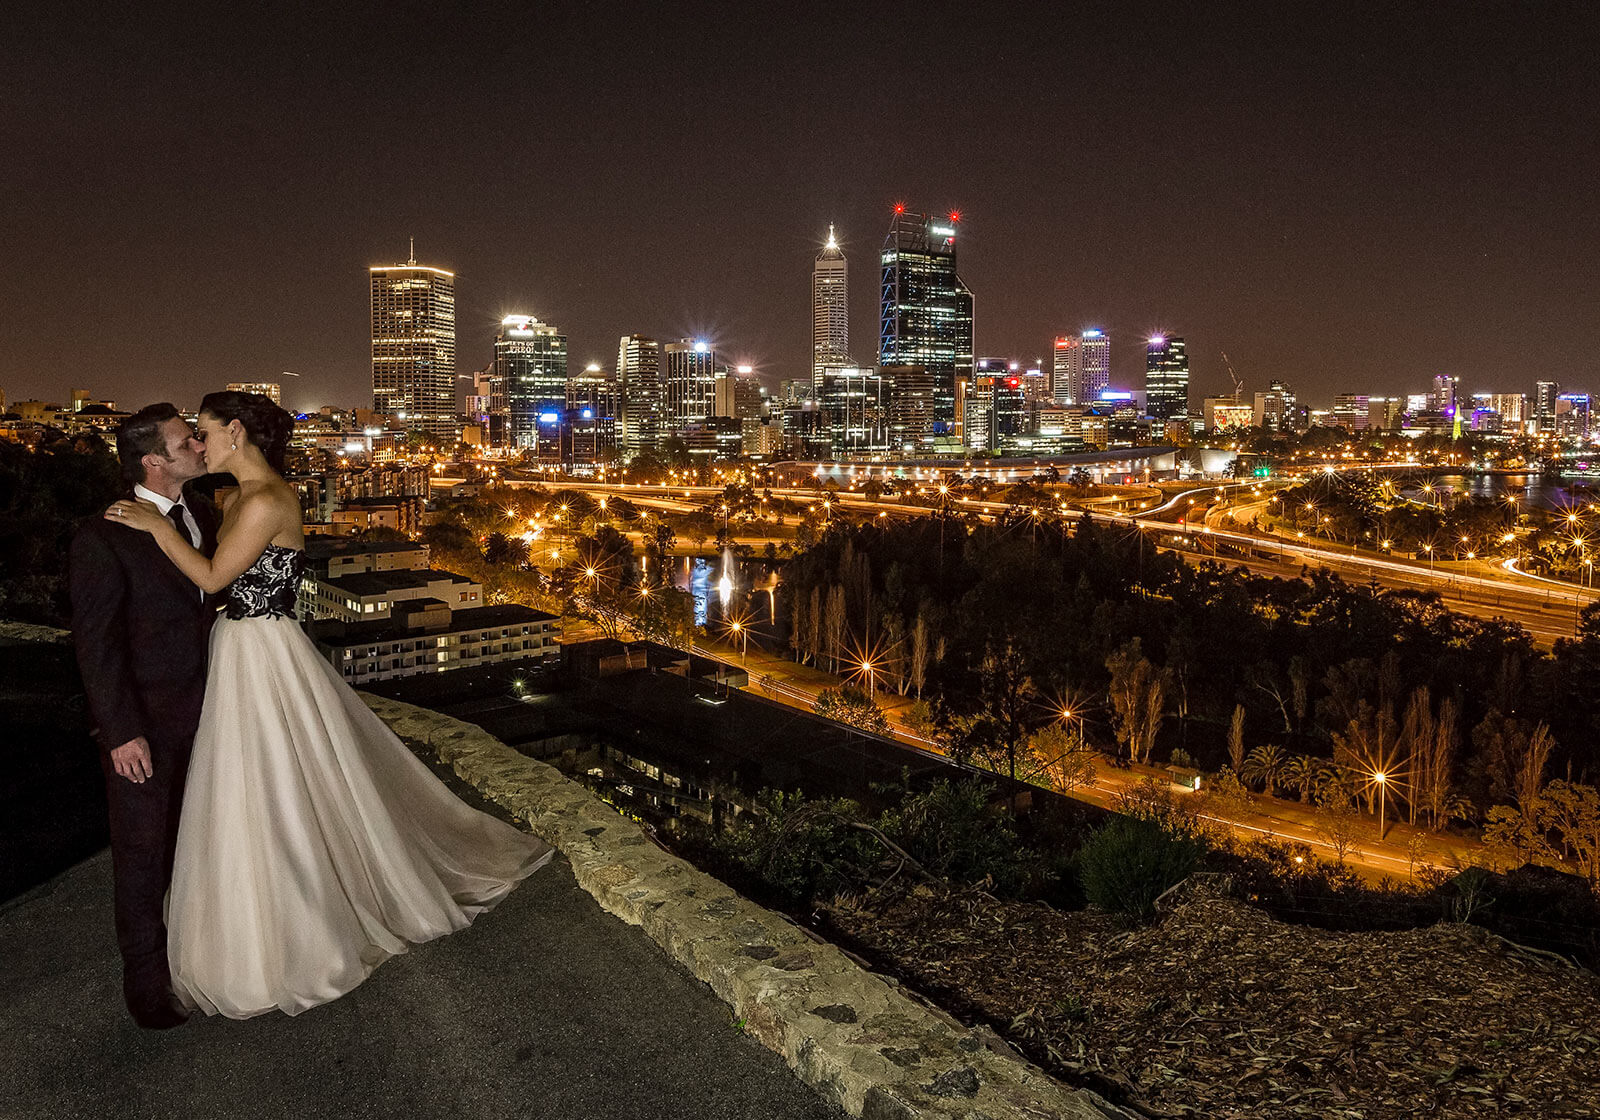 Fraser's Restaurant, Kings Park, Perth Wedding Photography by Peter Adams-Shawn